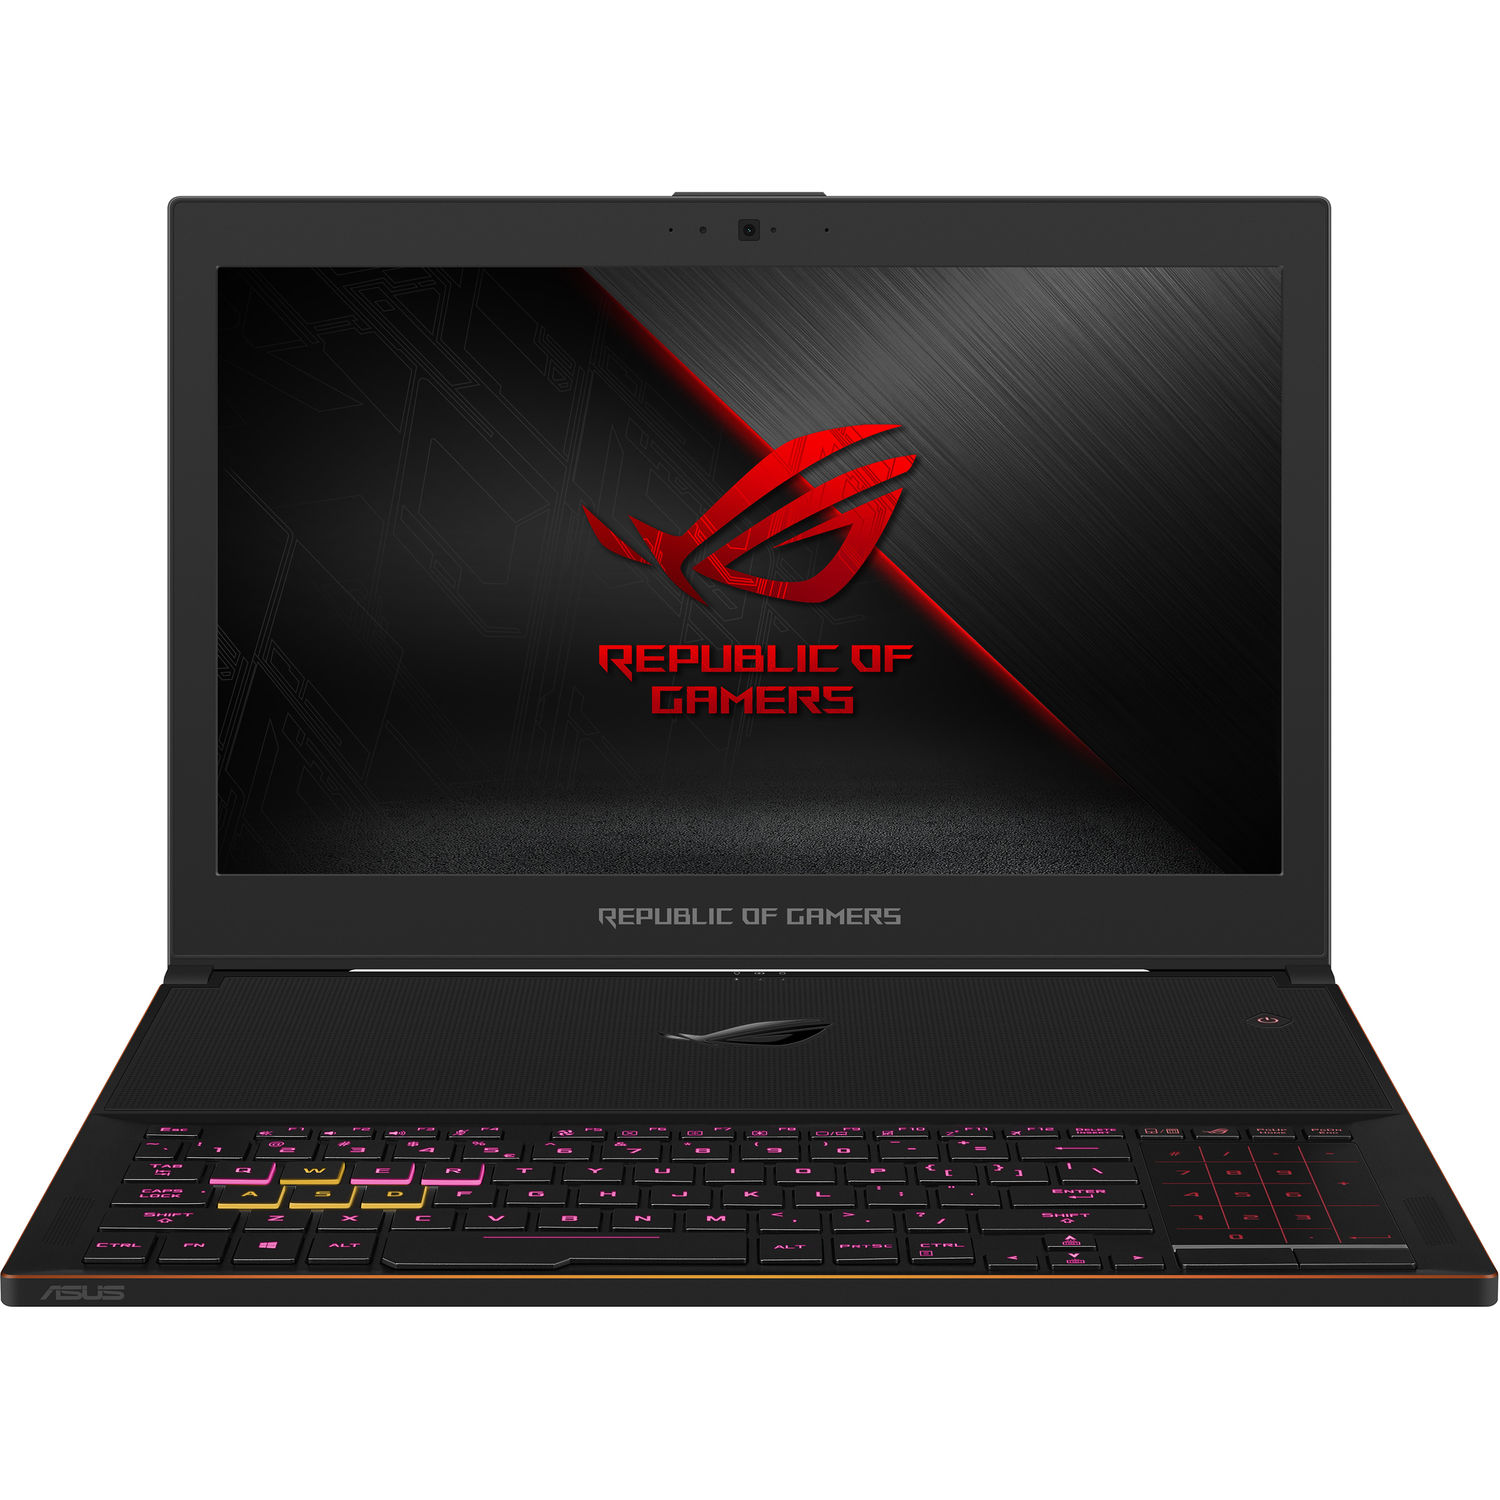 ASUS ROG Zephyrus GX501GI-XS74 Slim and Light Gaming and Business Laptop (Intel 8th Gen Coffee Lake i7-8750H, 24GB RAM,... by MichaelElectronics2